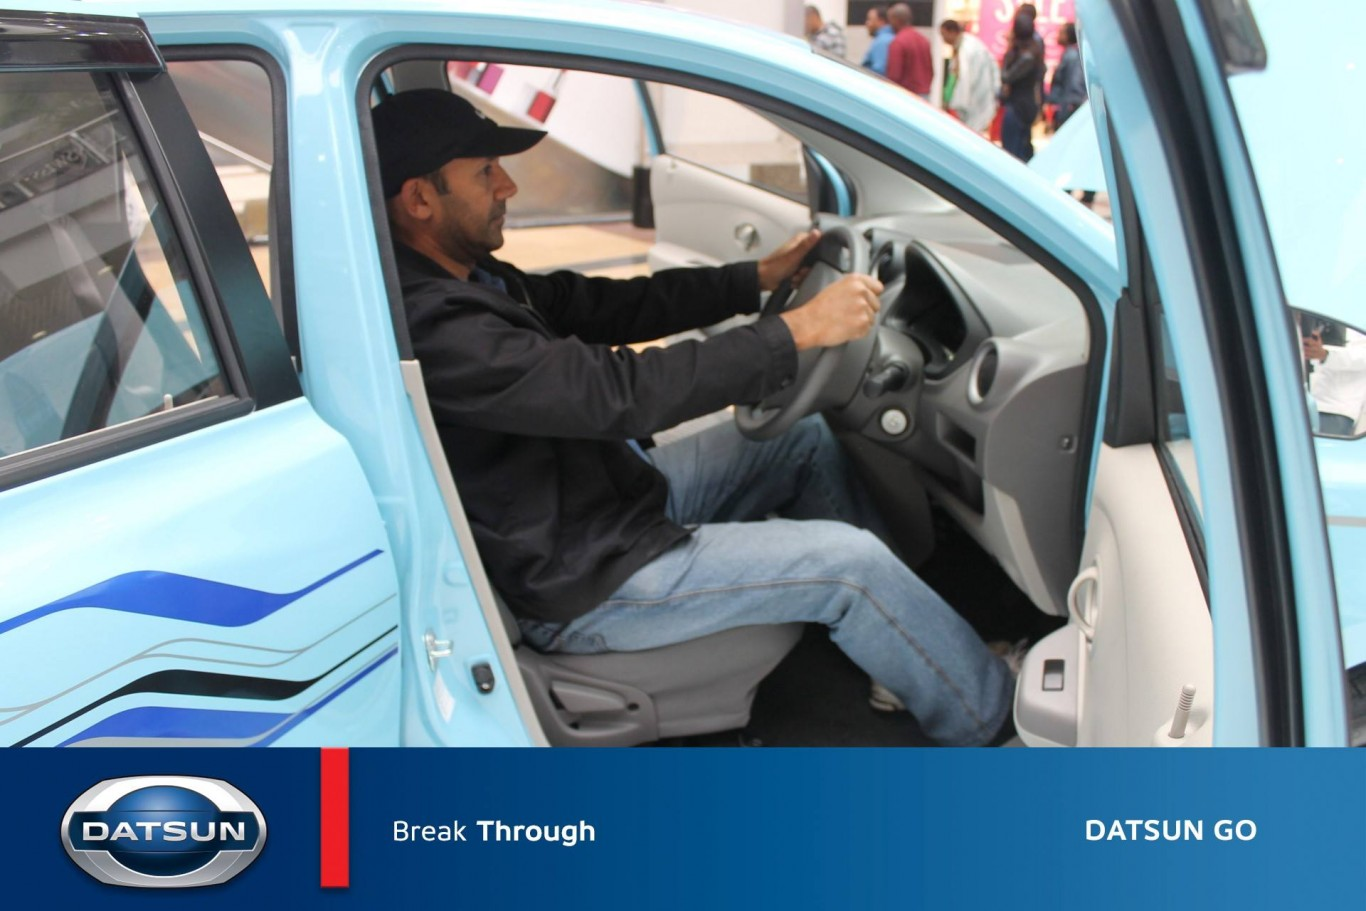 Datsun GO SIM driving simulator creates better, safer drivers